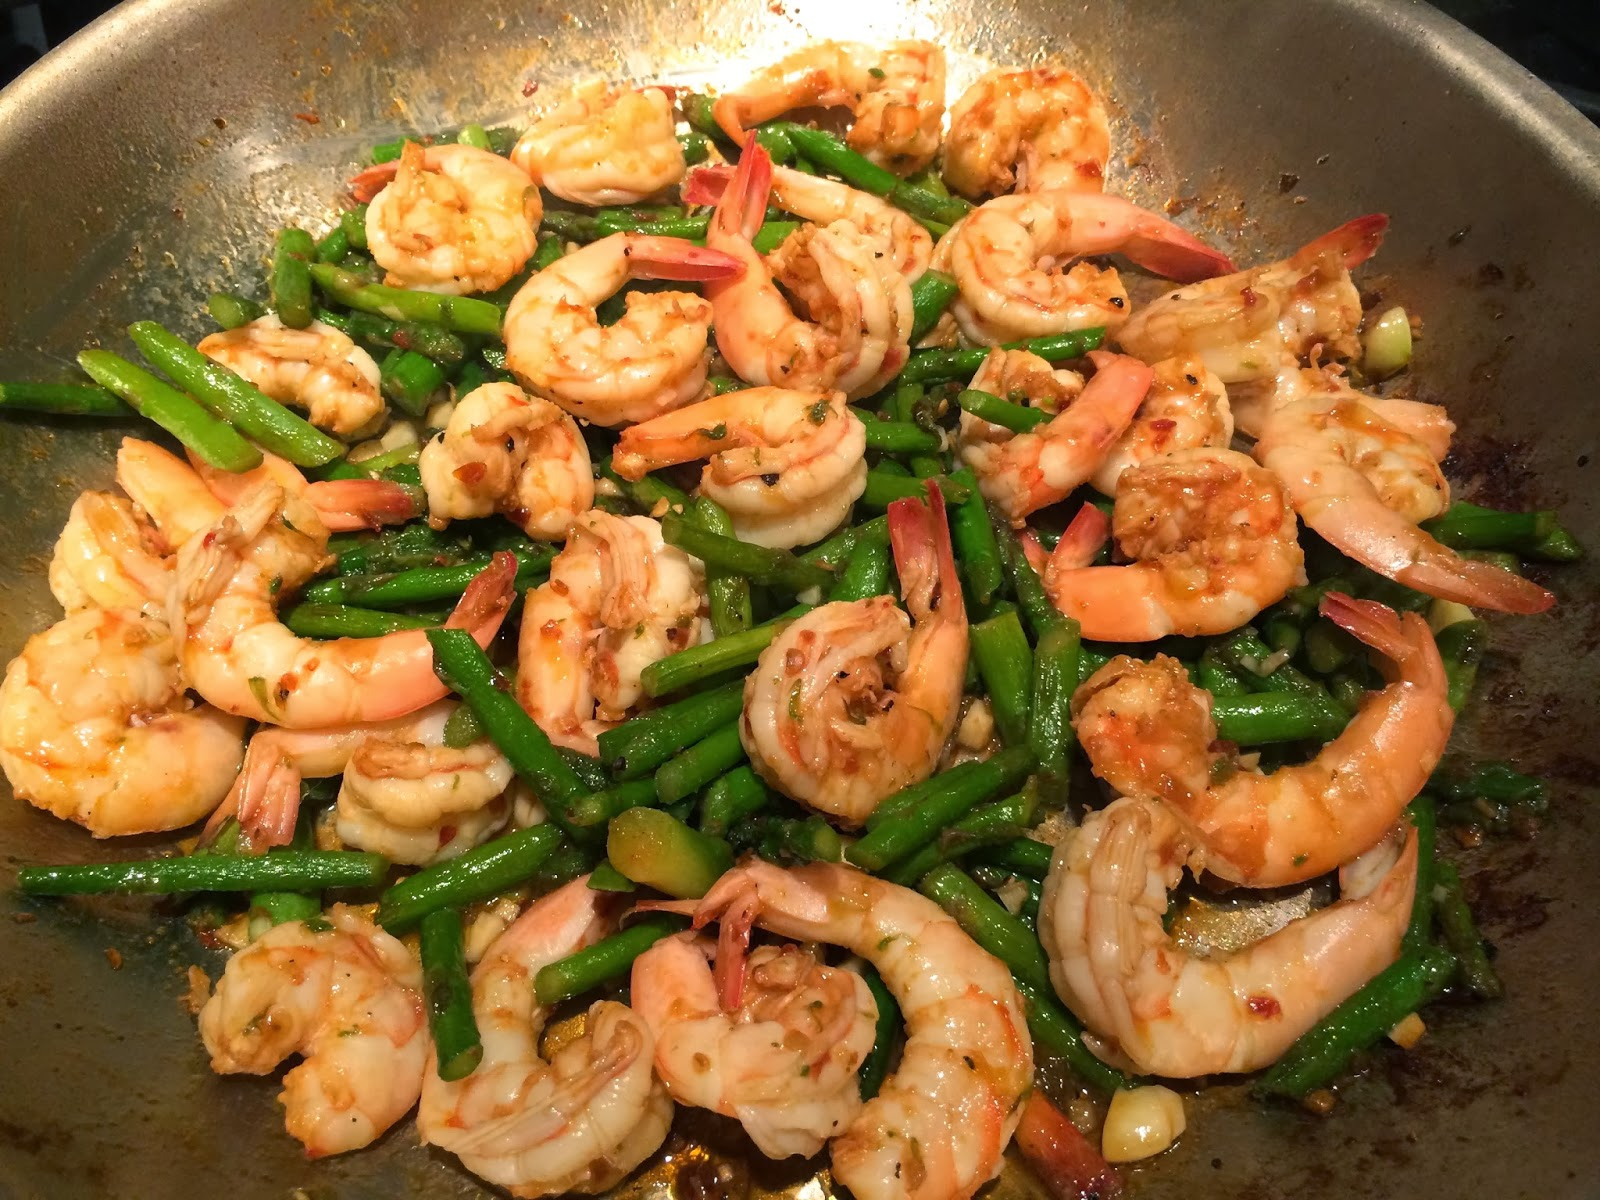 asparagus and shrimp stir fry shrimp stir fry on noodle pillows shrimp ...